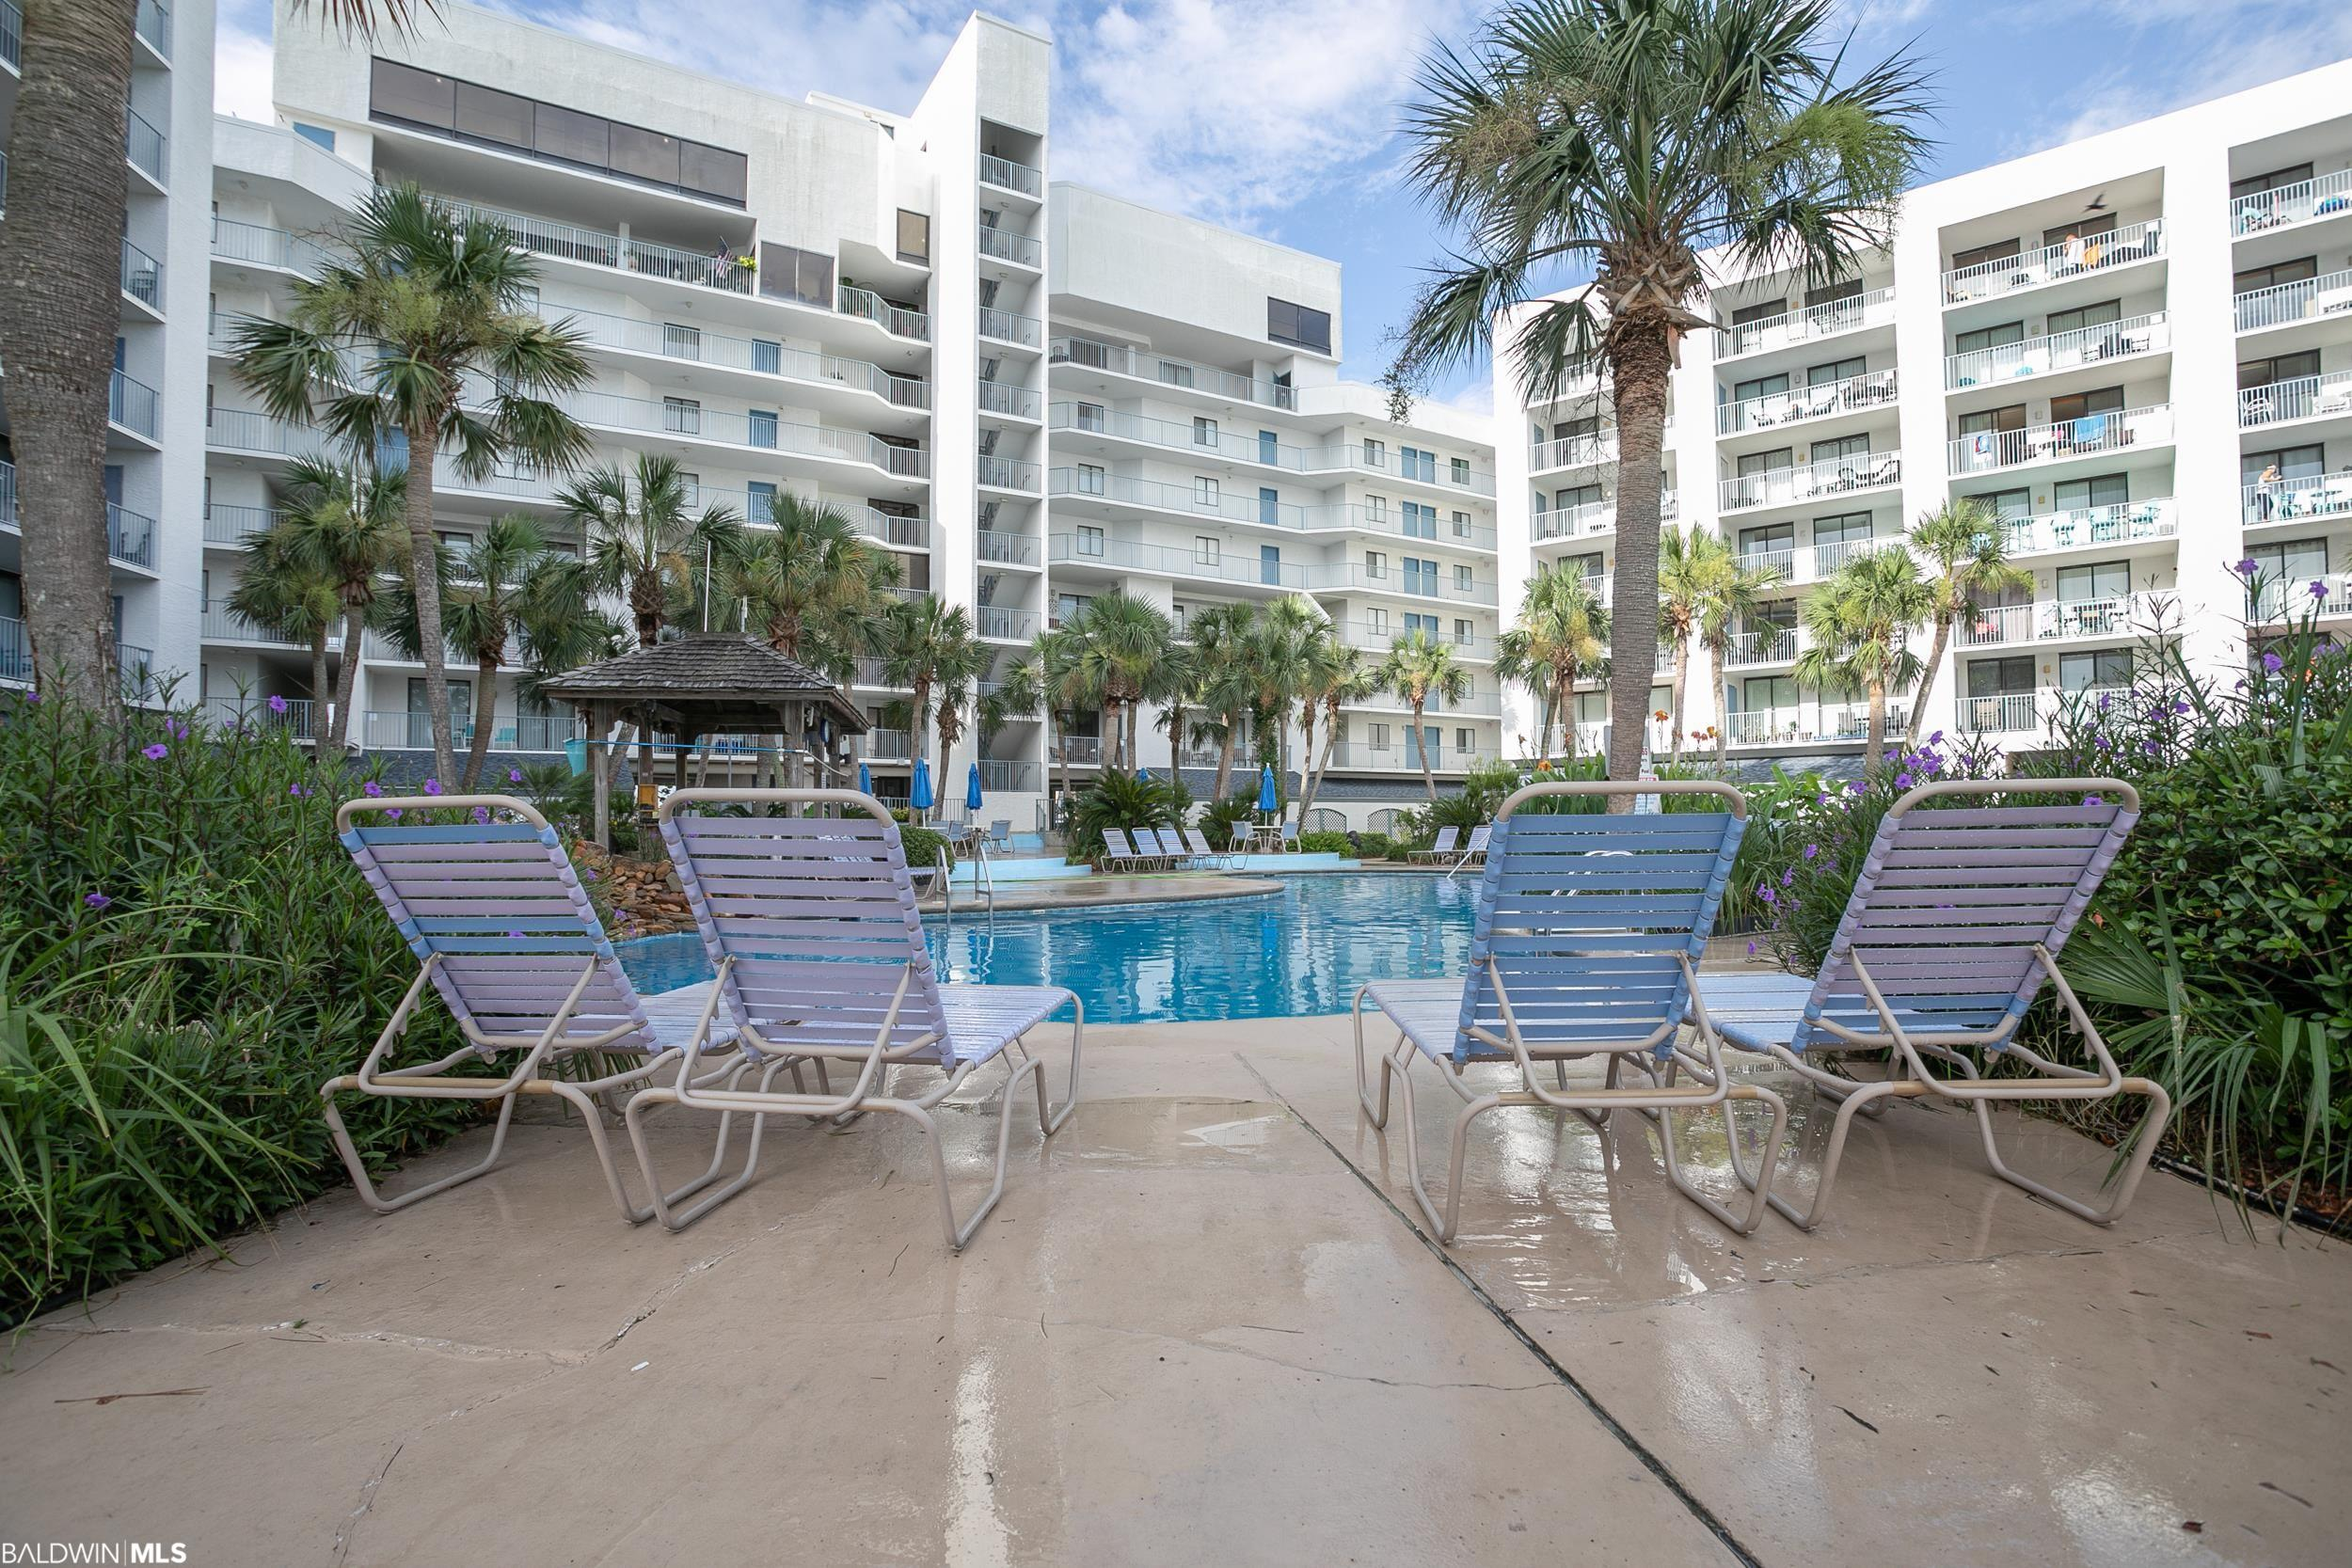 Have the best of  both worlds! Private gated beach access and views as well as a  lagoon access and views. This is a East end unit at Gulf Shores Surf and Racquet club featuring double balconies with Gulf and Lagoon views. This non-rental unit is immaculate, bright and comfortable. The bedroom features a lagoon view balcony with floor to ceiling sliding glass door, New king mattress and double dresser. The bathroom has been completely re. New tub shower combo, new toilet and vanity. There is pretty driftwood style laminate flooring in the kitchen, bath and halway and brand new carpeting in the bedroom and living area. This condo has been recently painted too! The living dining area features an additional window on the east wall and floor to ceiling sliding glass door with custom blinds that brings in lots of light and offers Gulf views. Take your living outside on you ample size gulf view balcony to enjoy meals, coffee or an afternoon beverage. A very comfortable couch and TV console with fireplace will make those cool fall and winter days oh so cozy. 1 year old stainless appliances in kitchen and newer full size stack washer and dryer and hot water heater. BRAND NEW HVAC systems inside and out. 2 beach bikes and a tandem kayak convey. Ready for you to enjoy or share with guests. This complex is a rare find. The property sits on little lagoon with 2 piers. Peir 1 features 1st come ,1st serve boat slips, boat ramp, fish cleaning station and is just a great spot to enjoy the wildlife. Pier 2 is the perfect spot for relaxing and enjoying amazing sunsets. Private gated beach access is just across the street. The pool area is beautifully landscaped with a hot tub, water feature and gazebo. In addition there are 2 lighted tennis courts, a shuffleboard court and 2 grilling areas. Boat and trailer storage lot too! To top it off the HOA is  very well managed with low low dues and a awesome friendly staff.